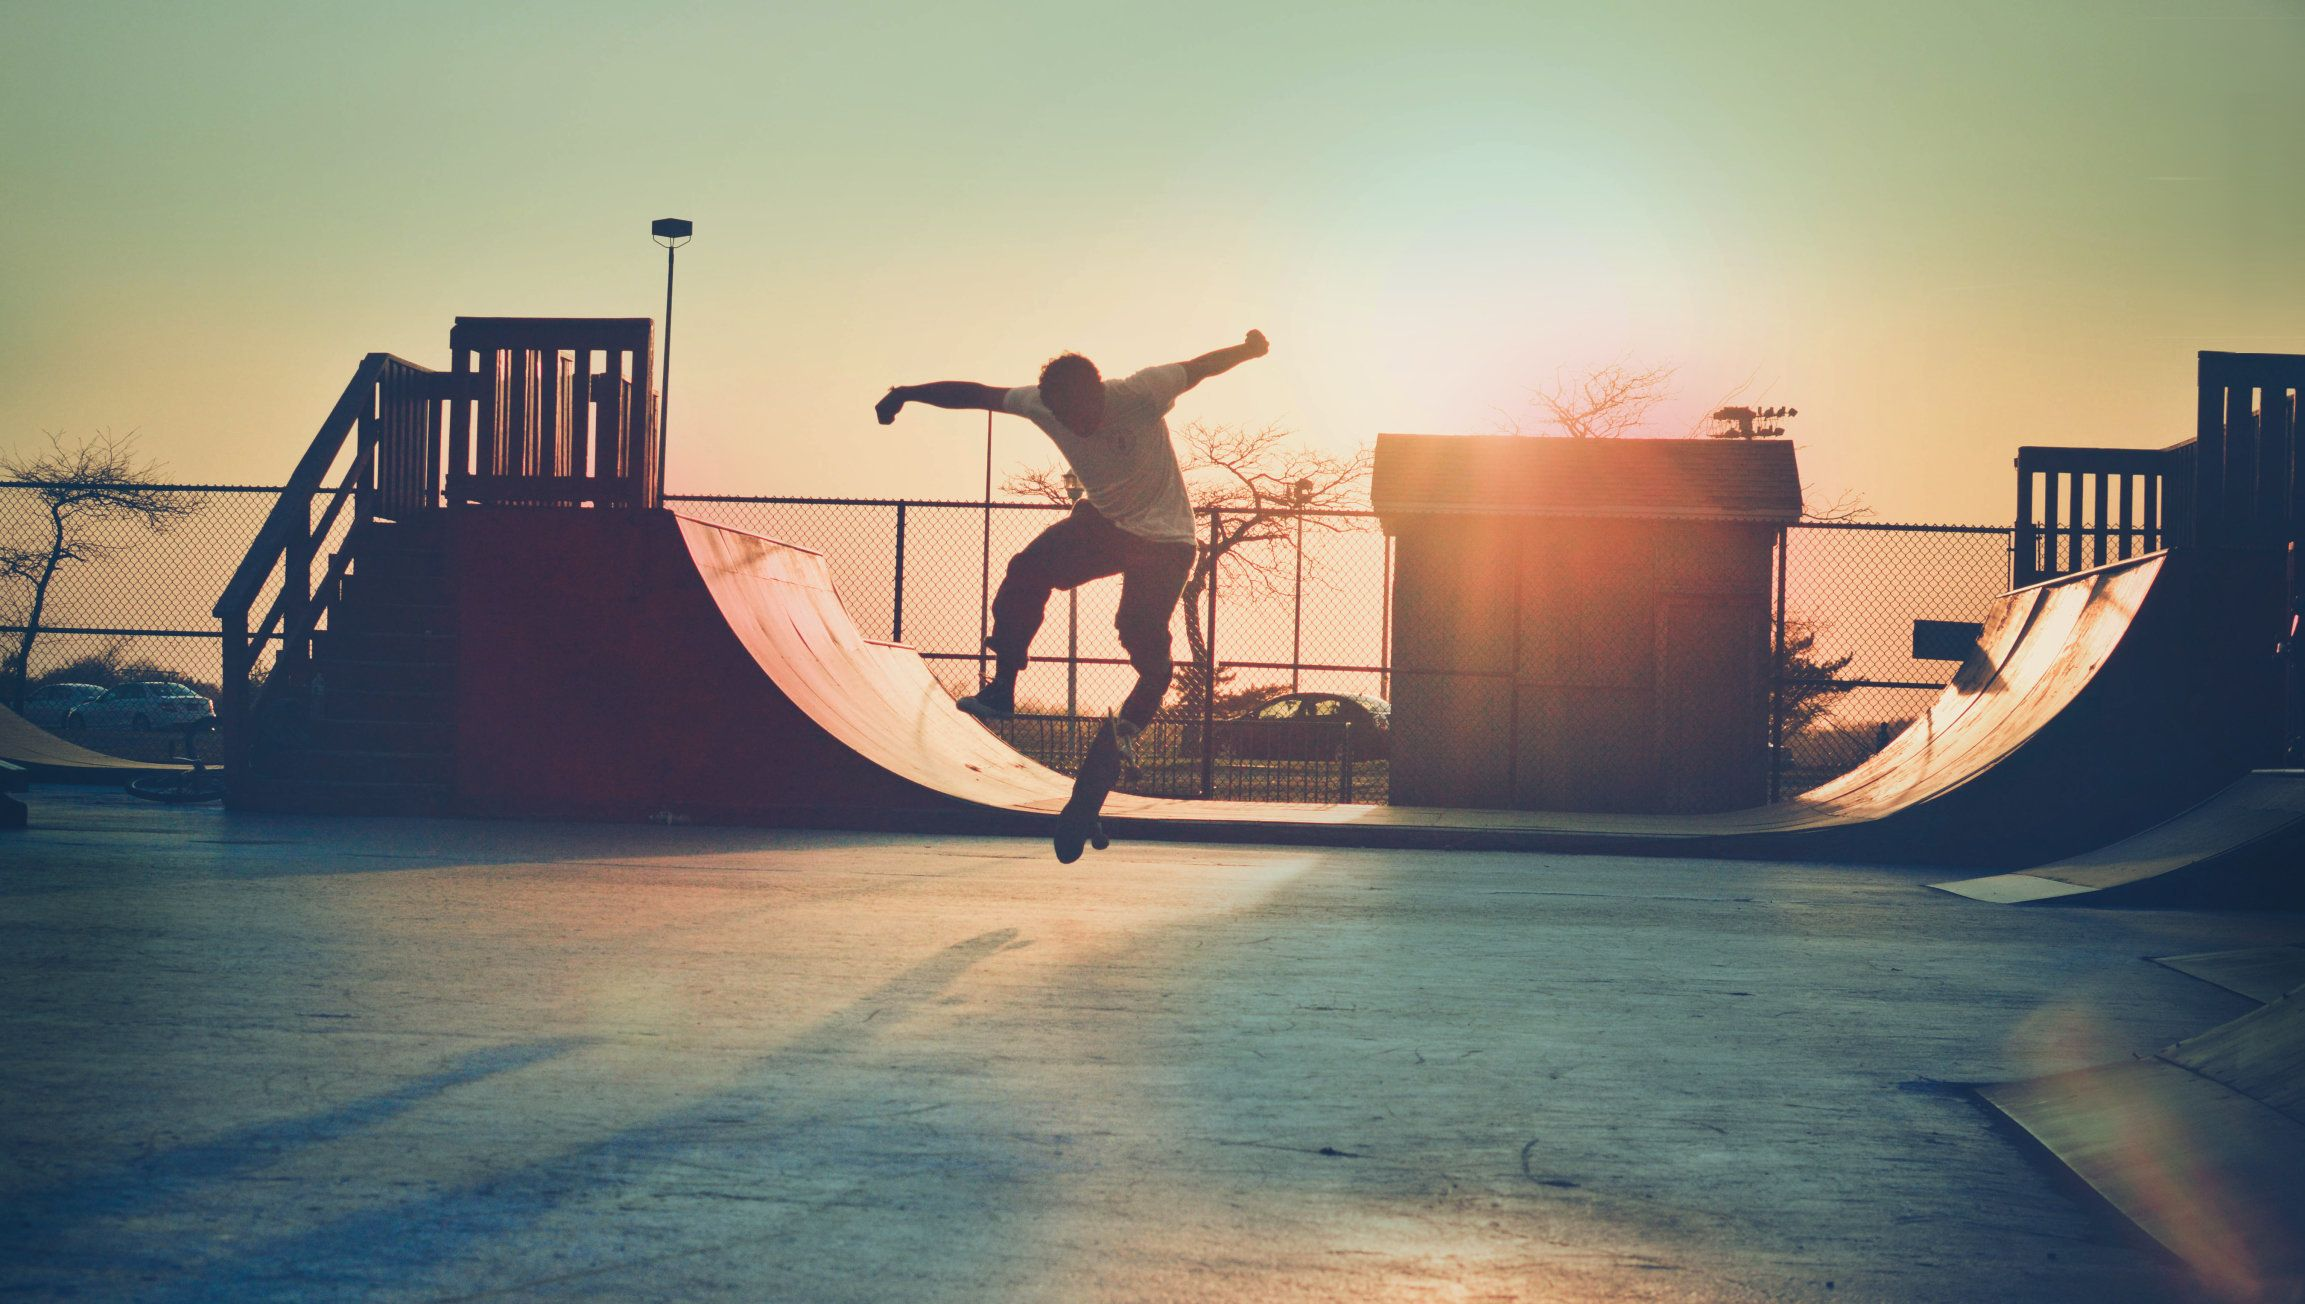 Skateboarder jumping at the skatepark at dusk.